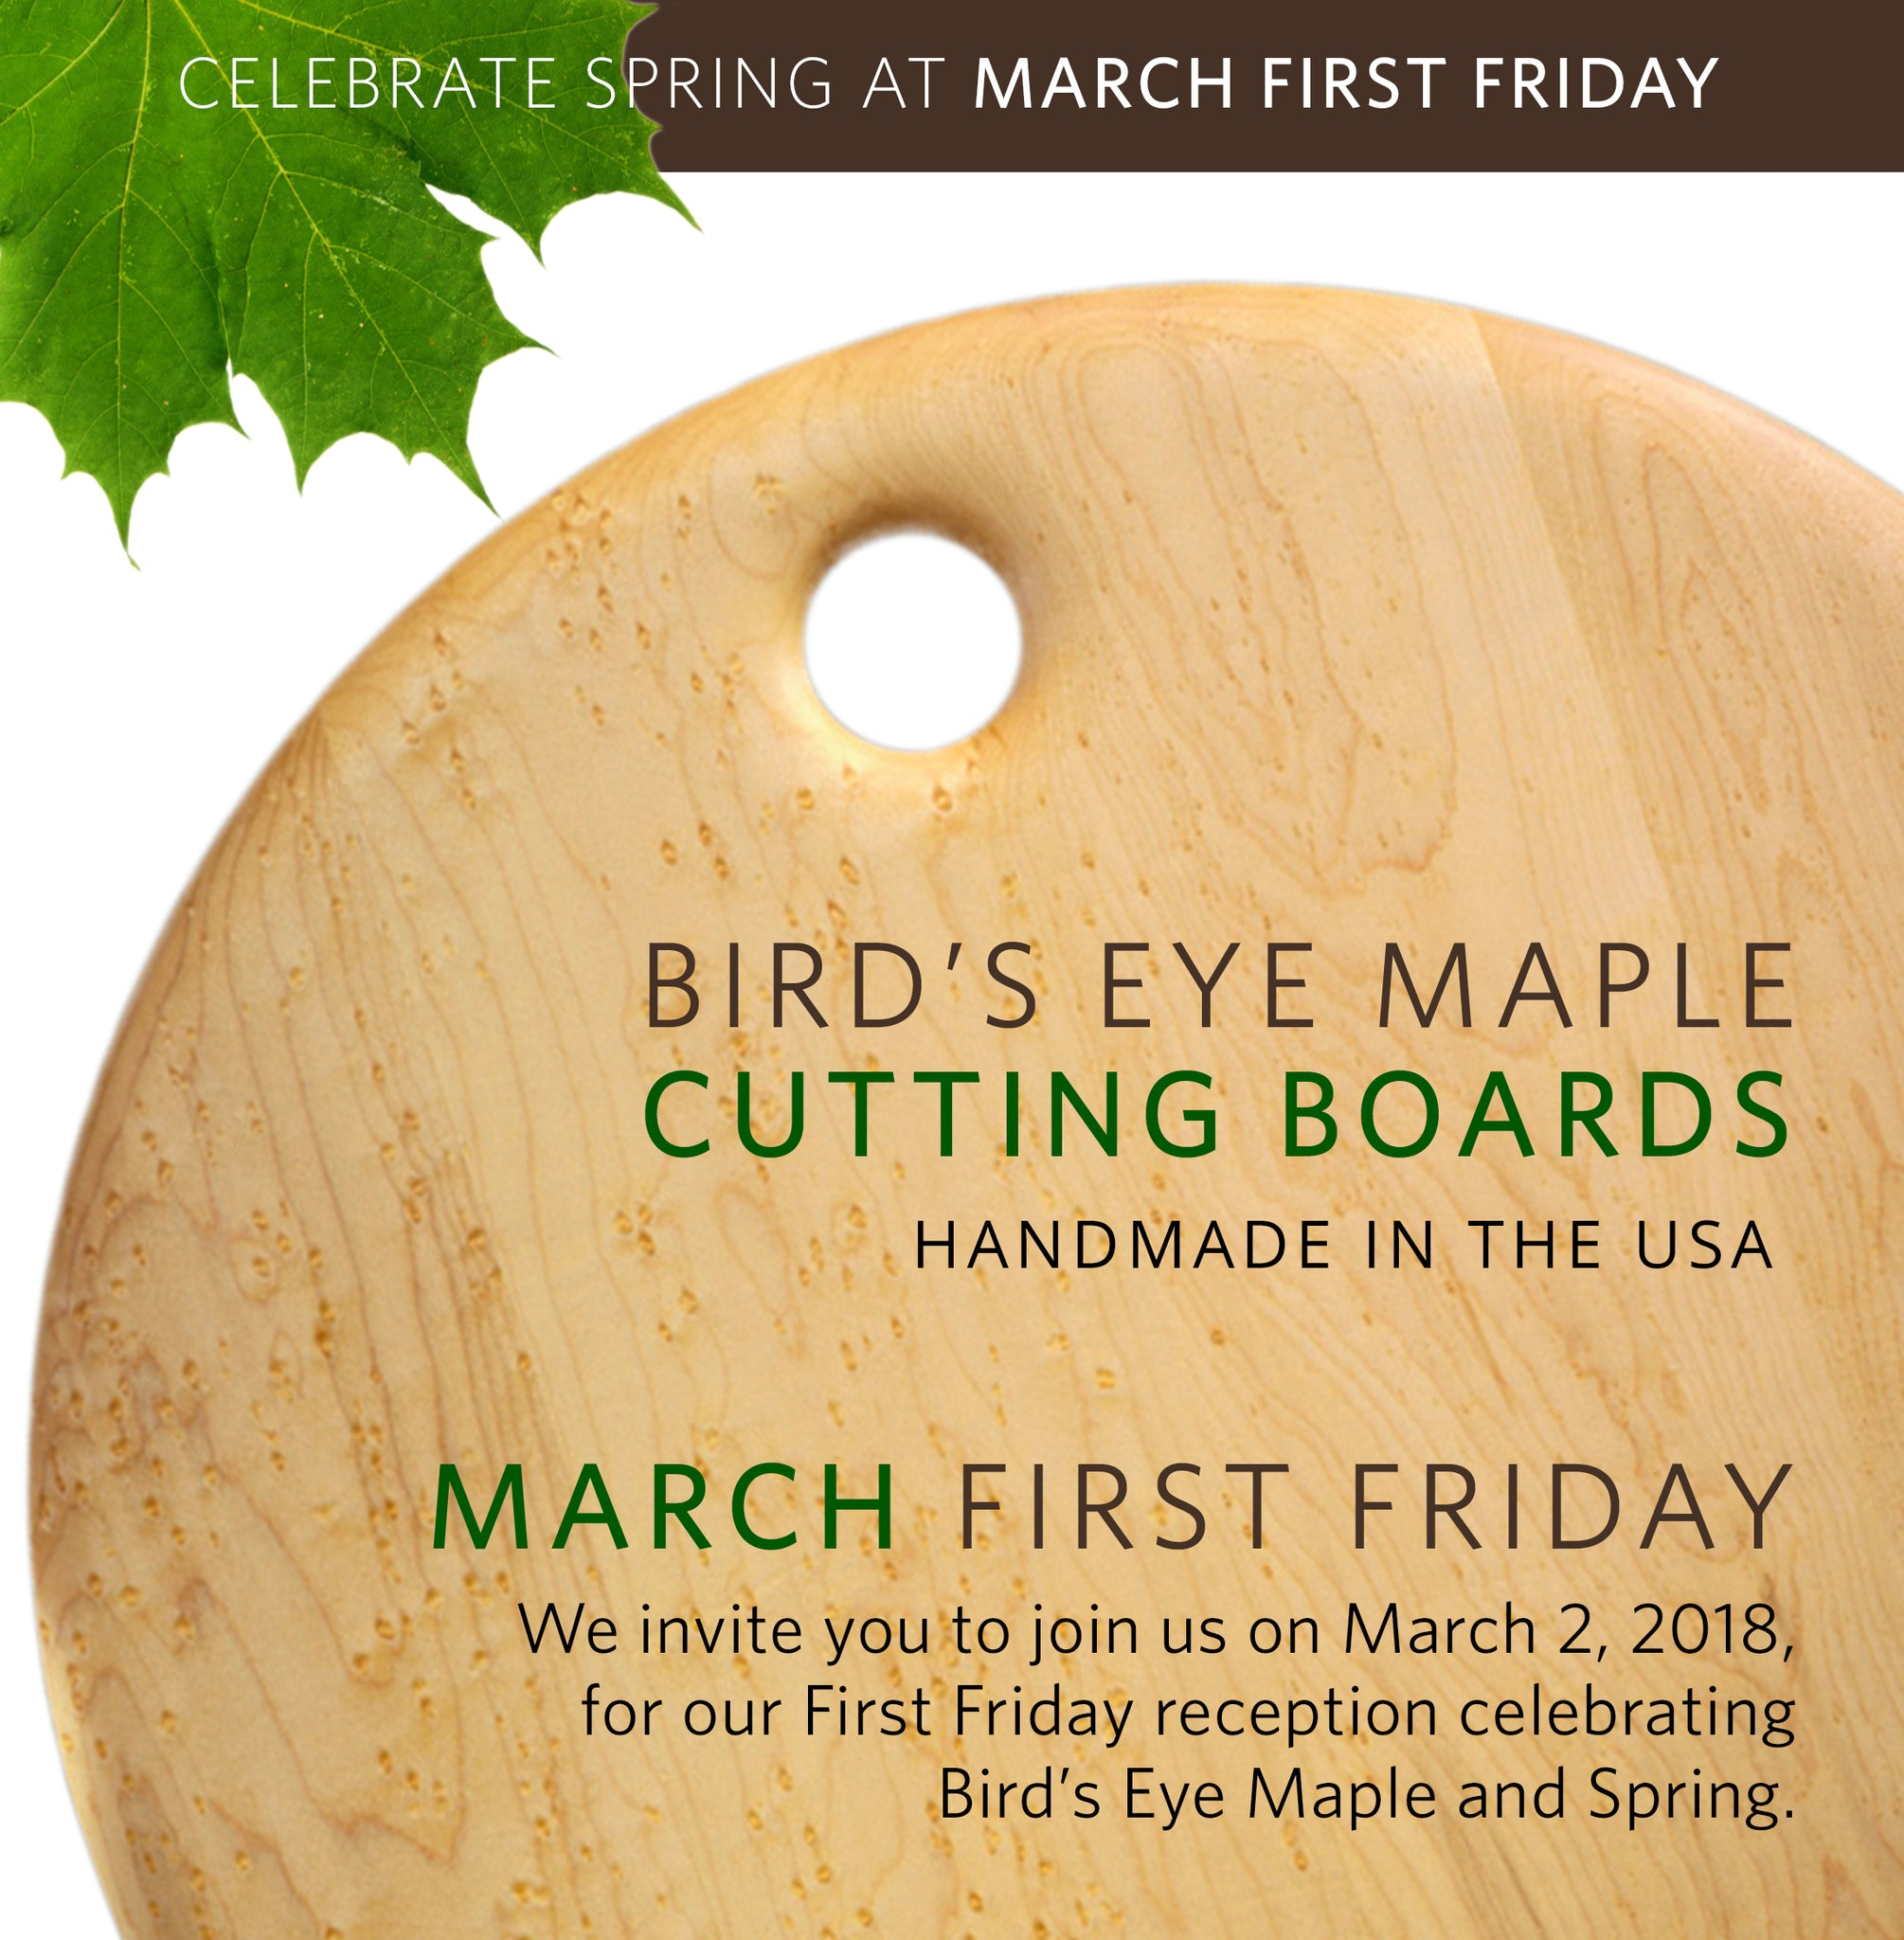 First Friday March: Celebrate Bird's Eye Maple and Spring!